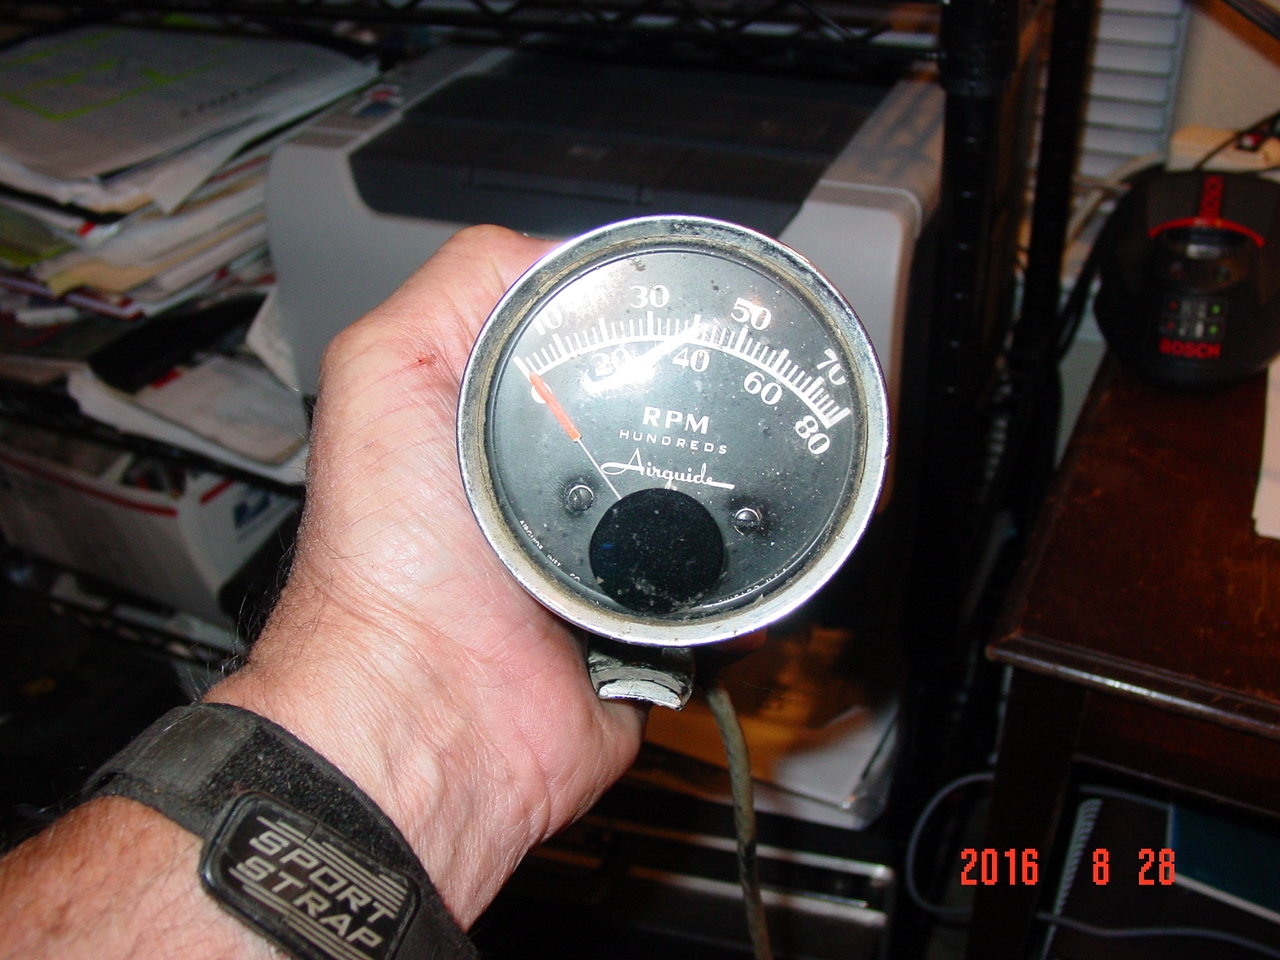 hight resolution of  found an airguide tach i think it is a model 656 or 657 it has 4 wires blue red green and either yellow or white does anyone know which wire goes